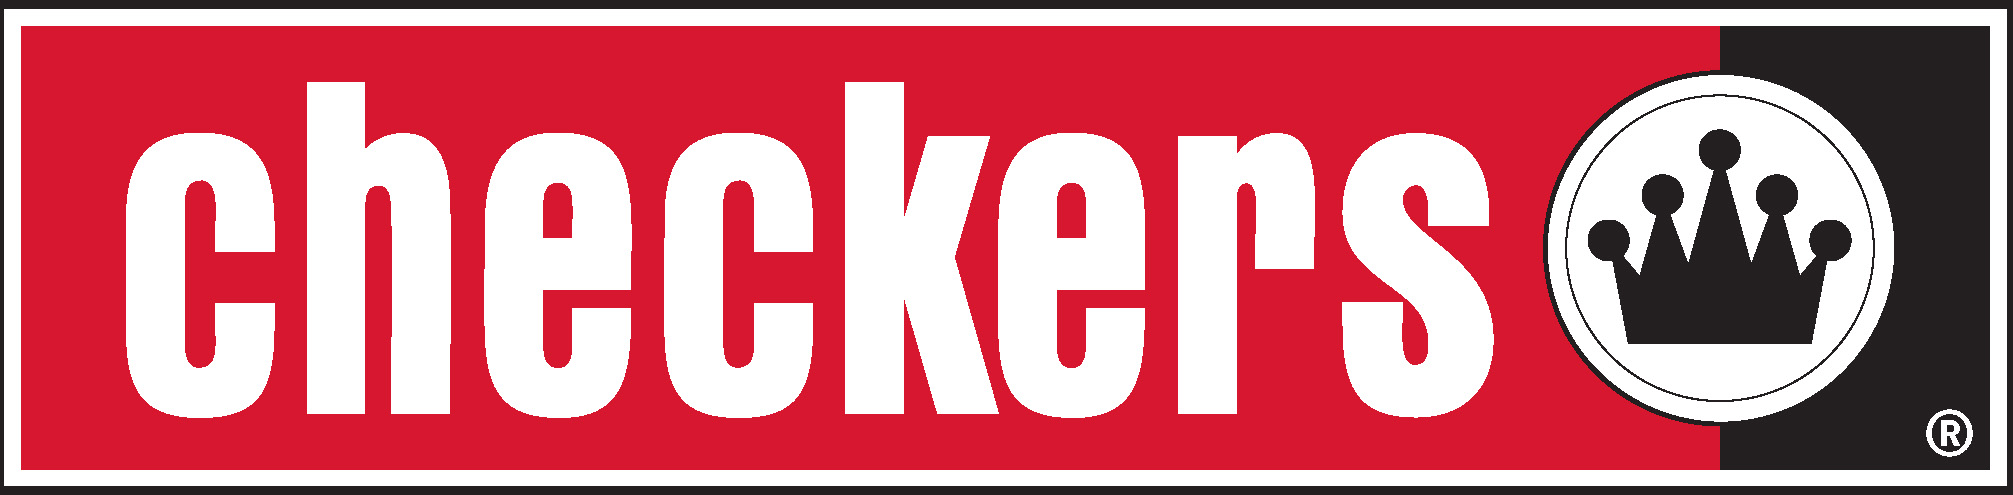 Checkers Cleaning Supply